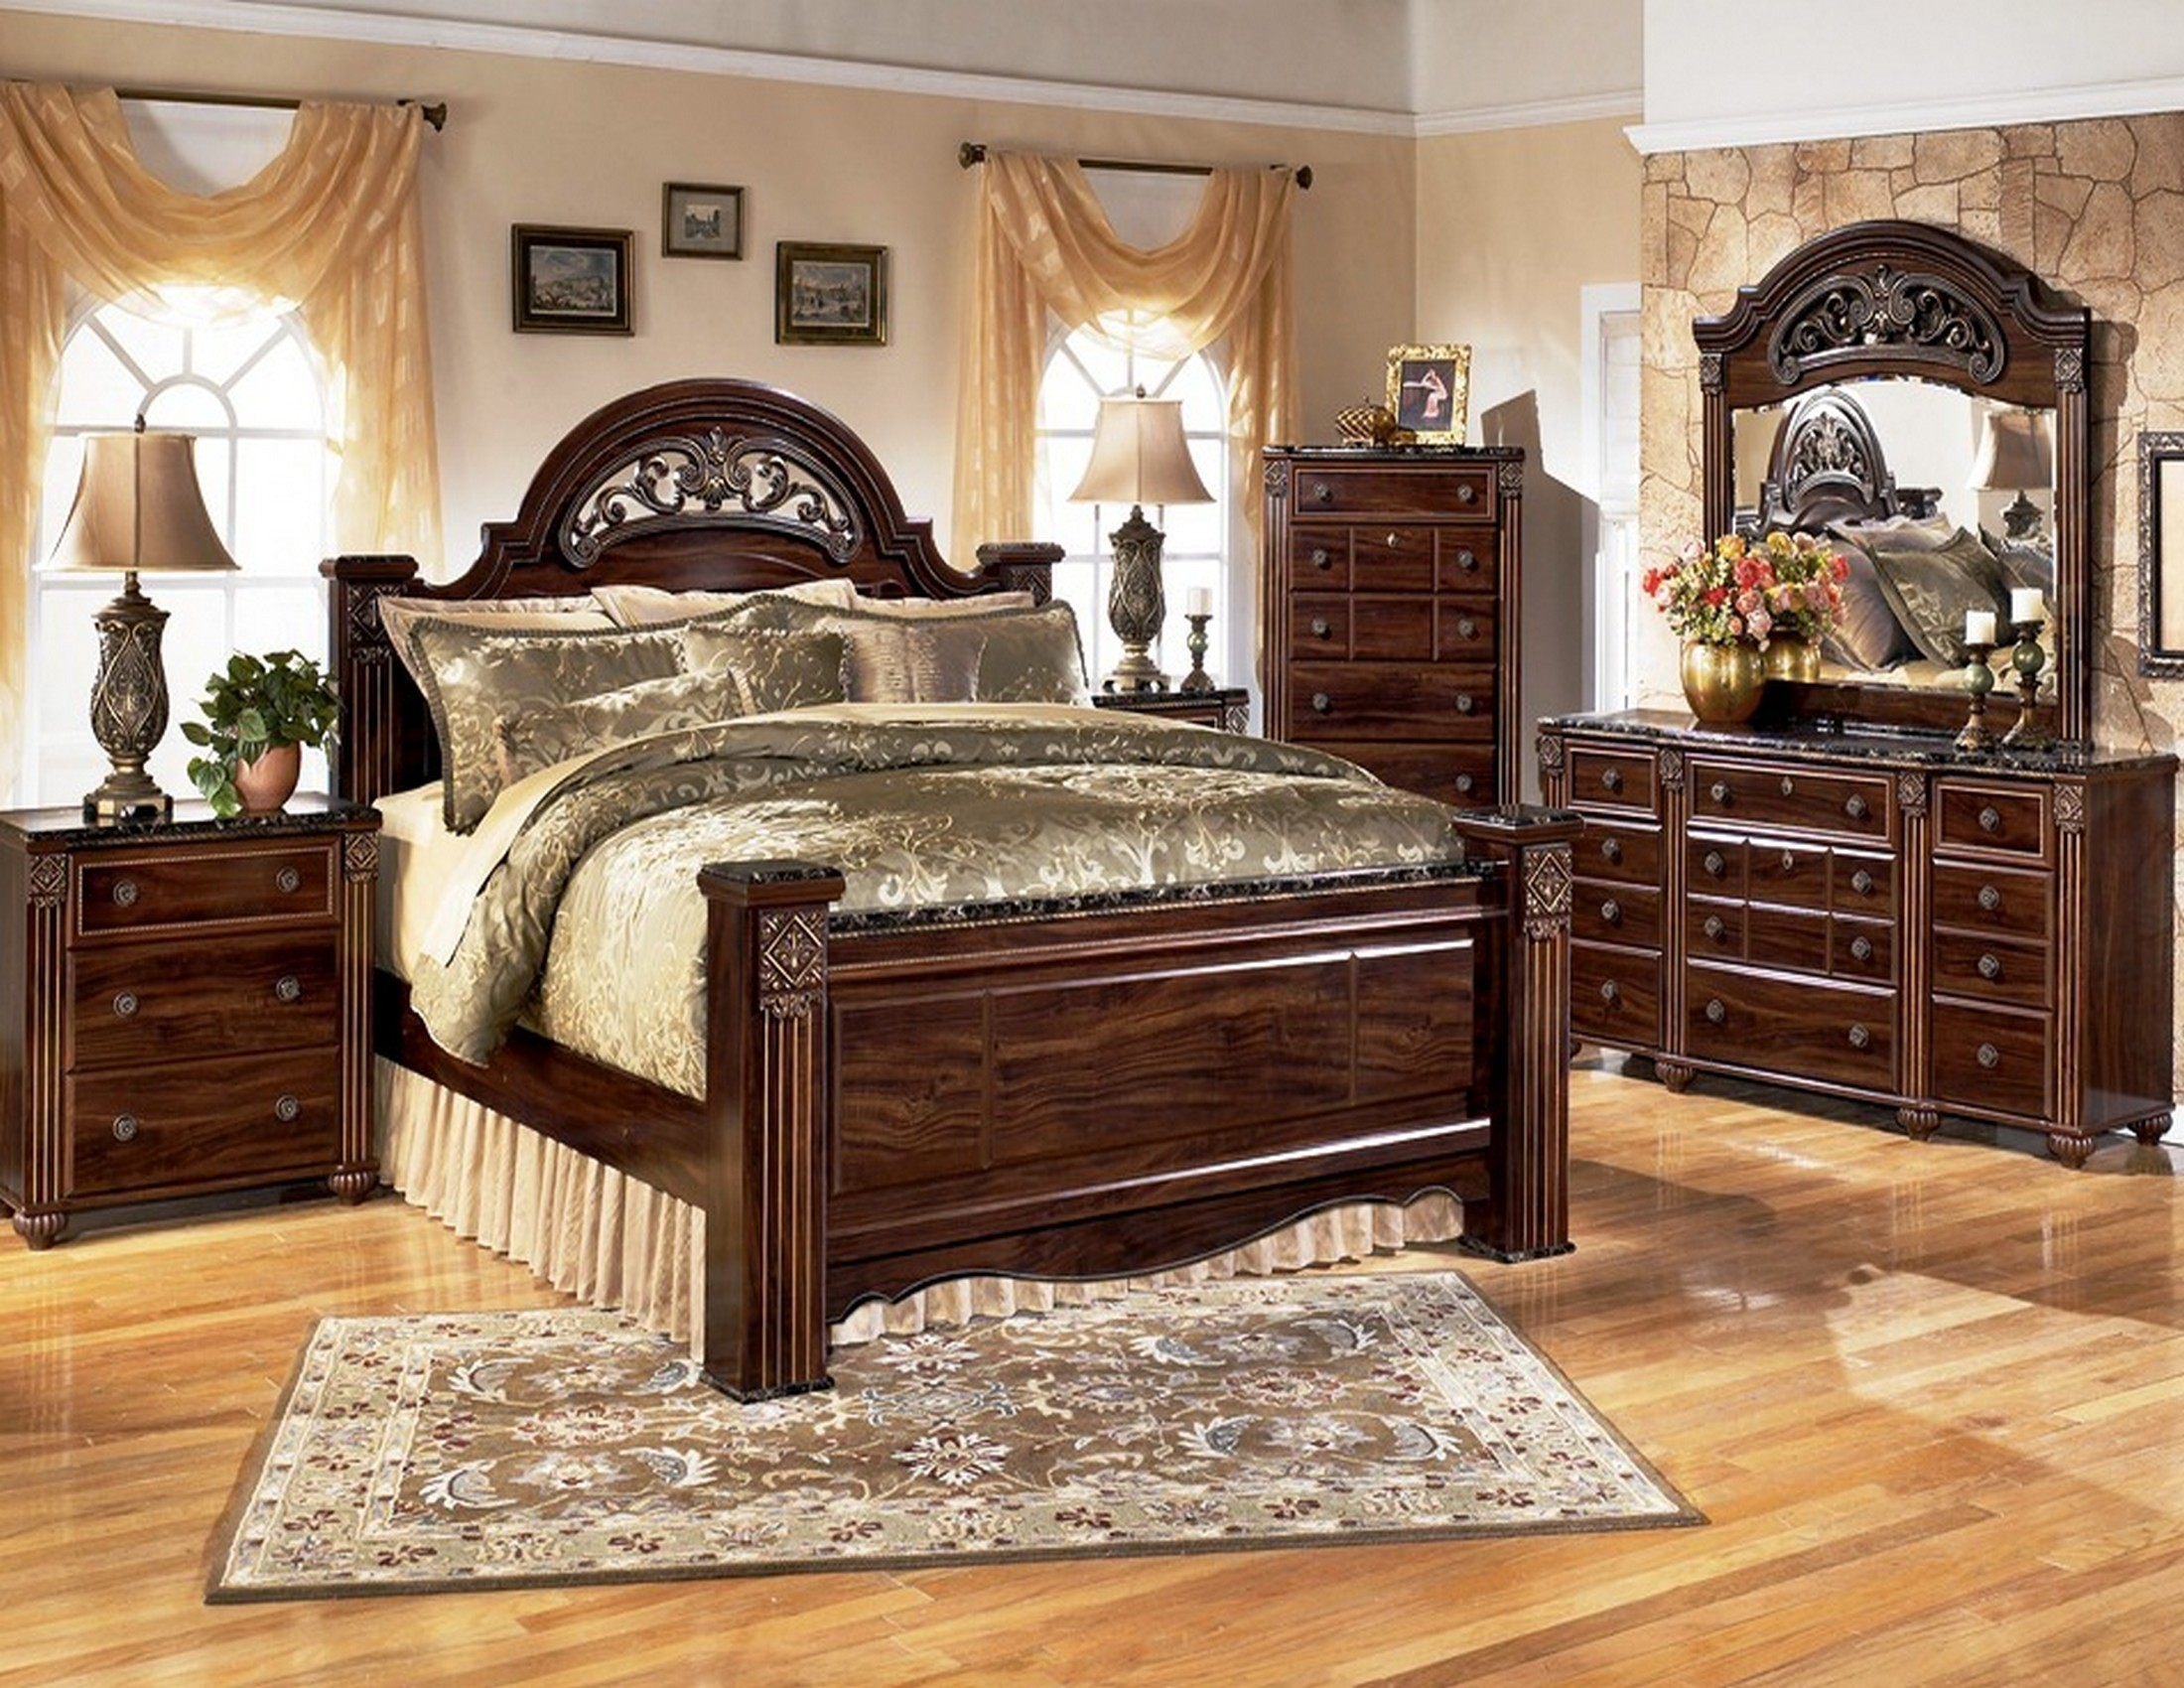 discounts room furniture shopping sets on queen pin bedroom set van bed overstock art piece big